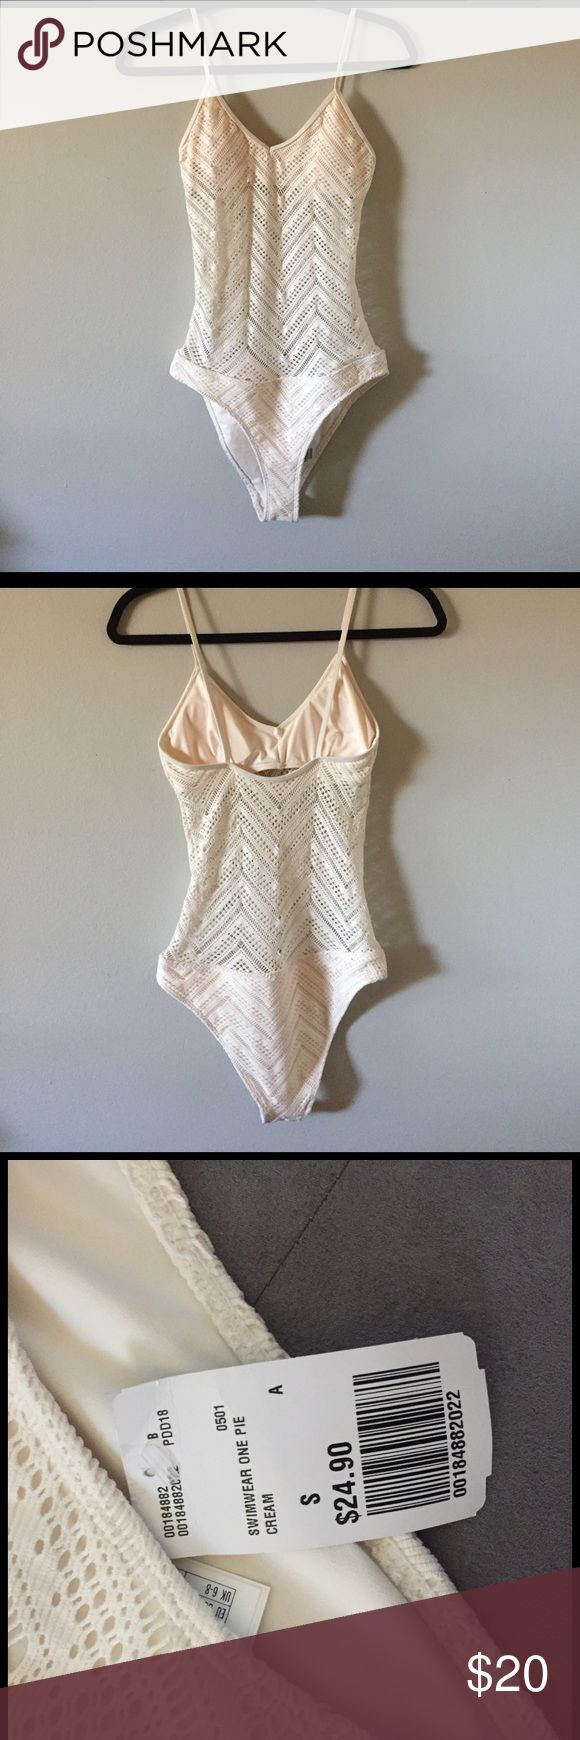 Cream One Piece Swimsuit Super cute one piece! Never worn, still has tags. Stomach is see through and top and bottom are lined. Light padding on top. Cream colored, size small. Forever 21 Swim One Pieces